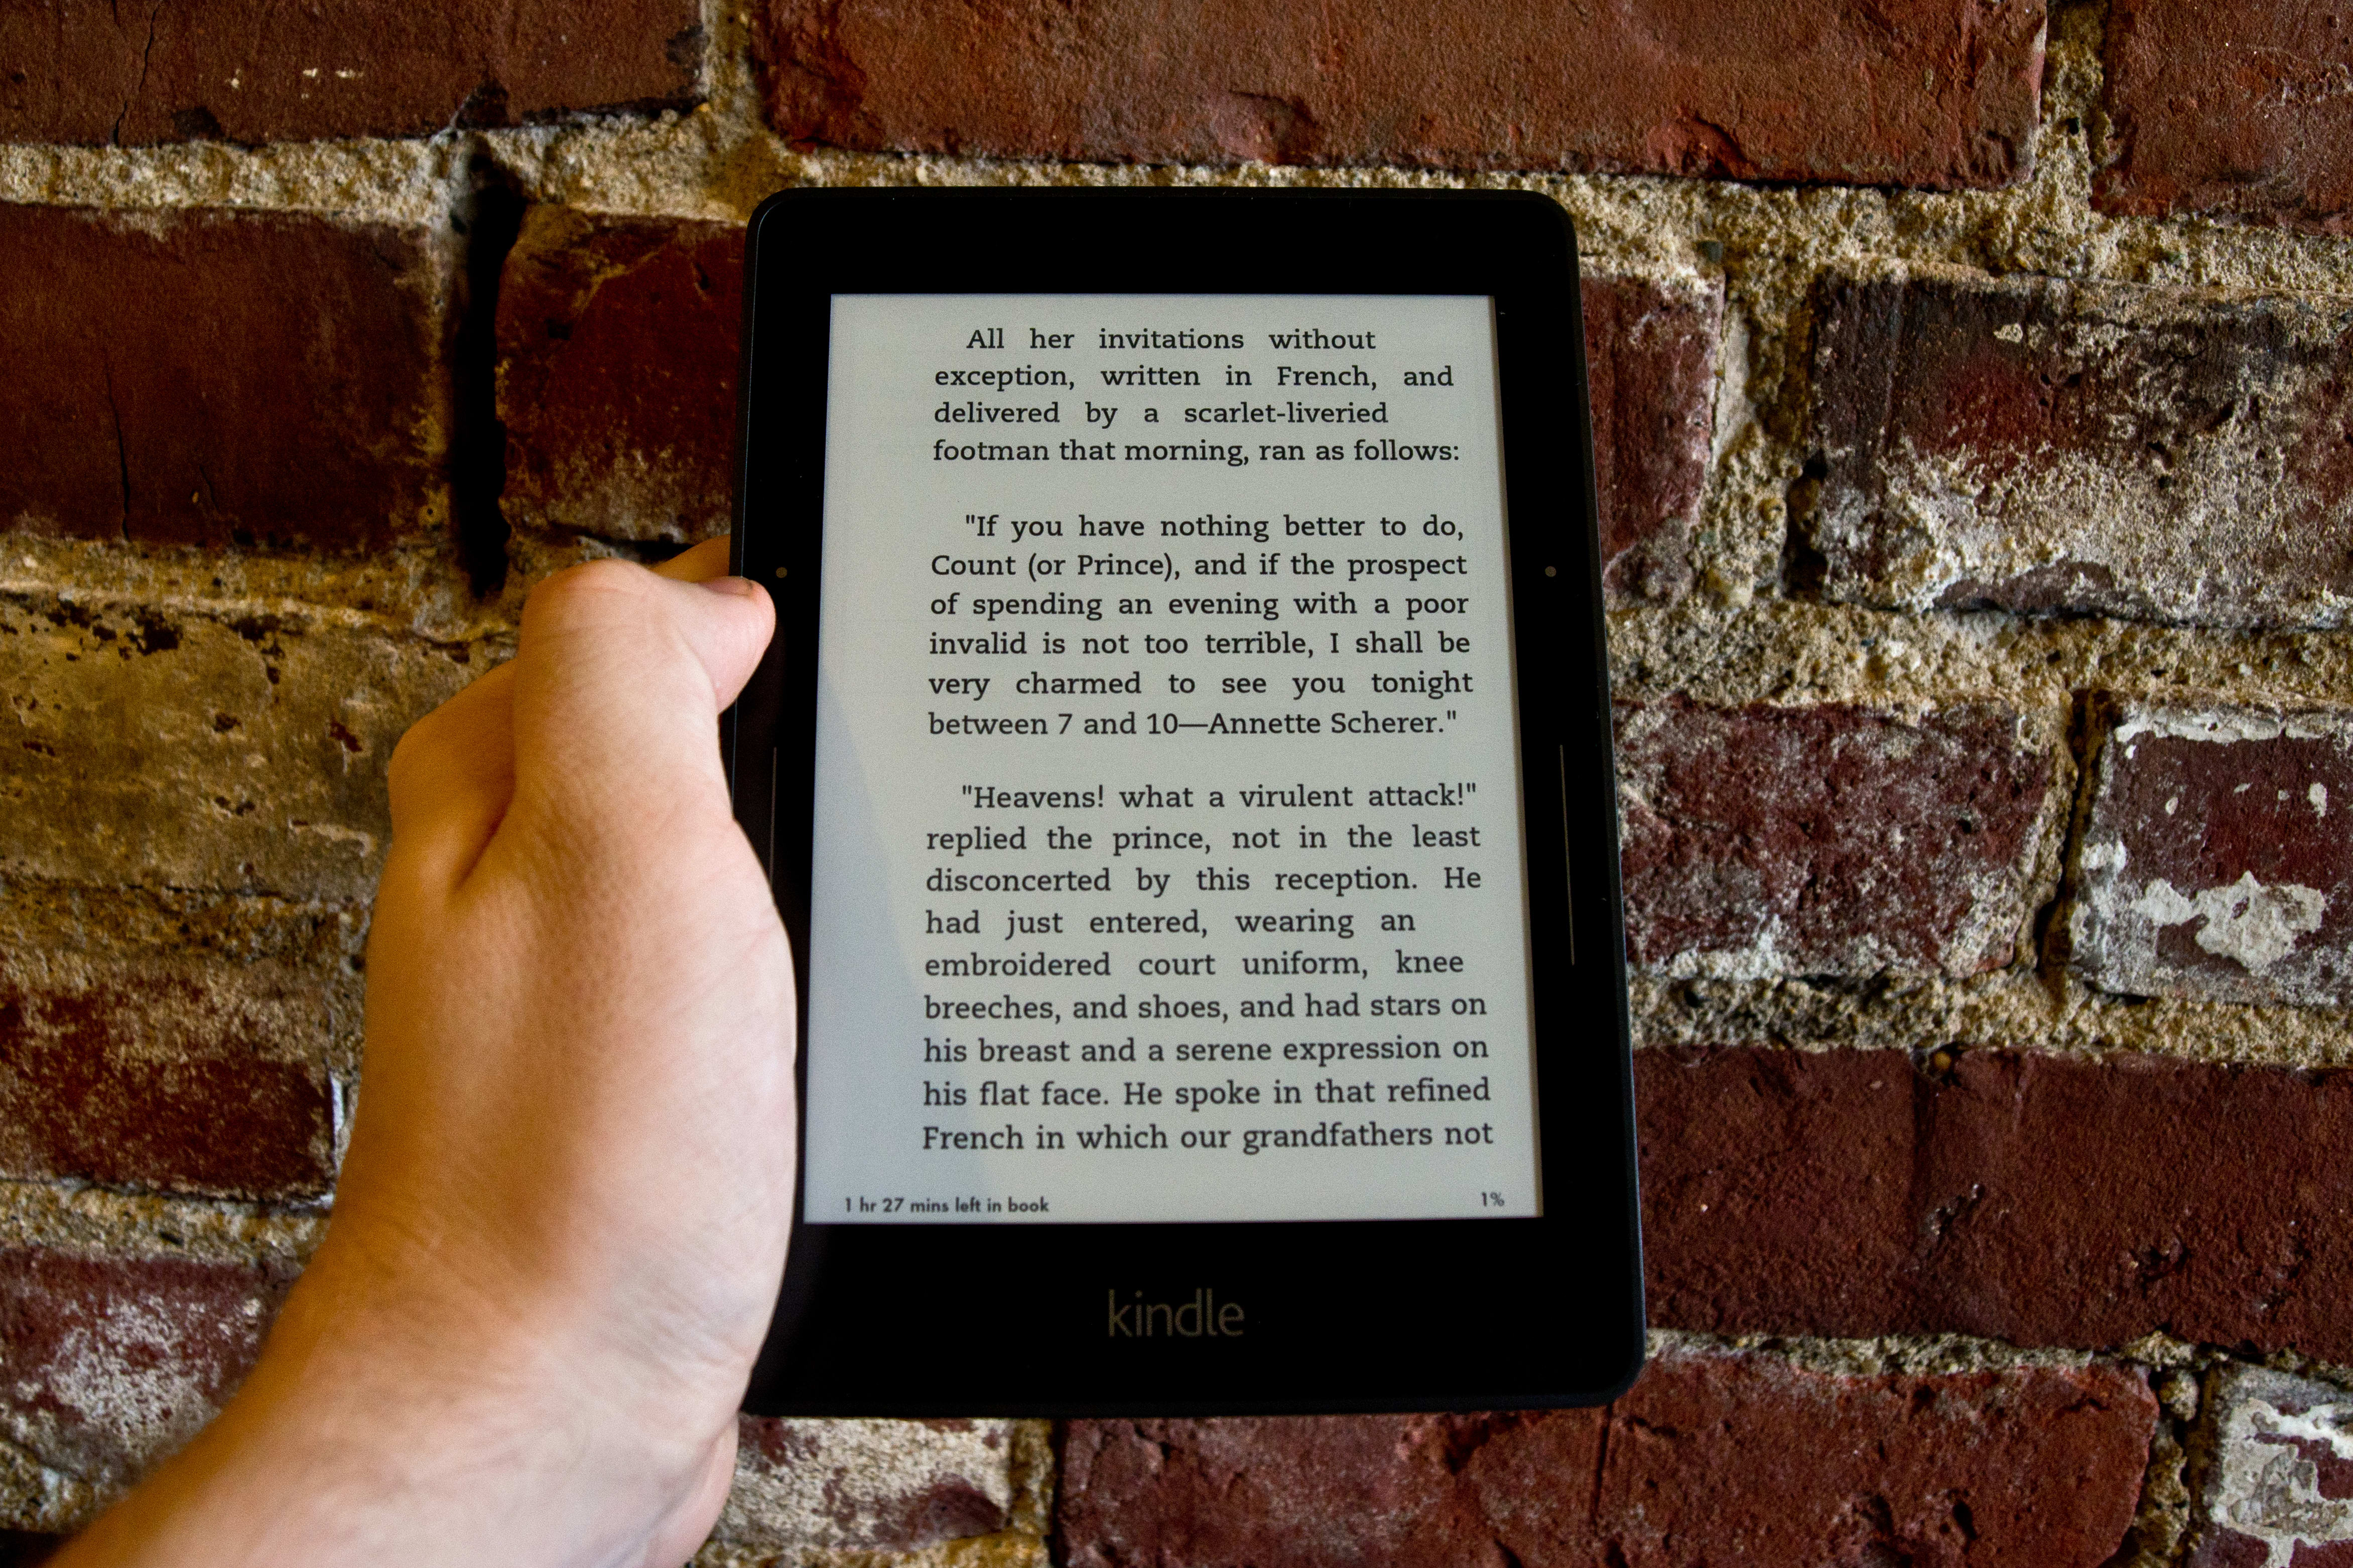 A photo of the Amazon Kindle Voyage being held.